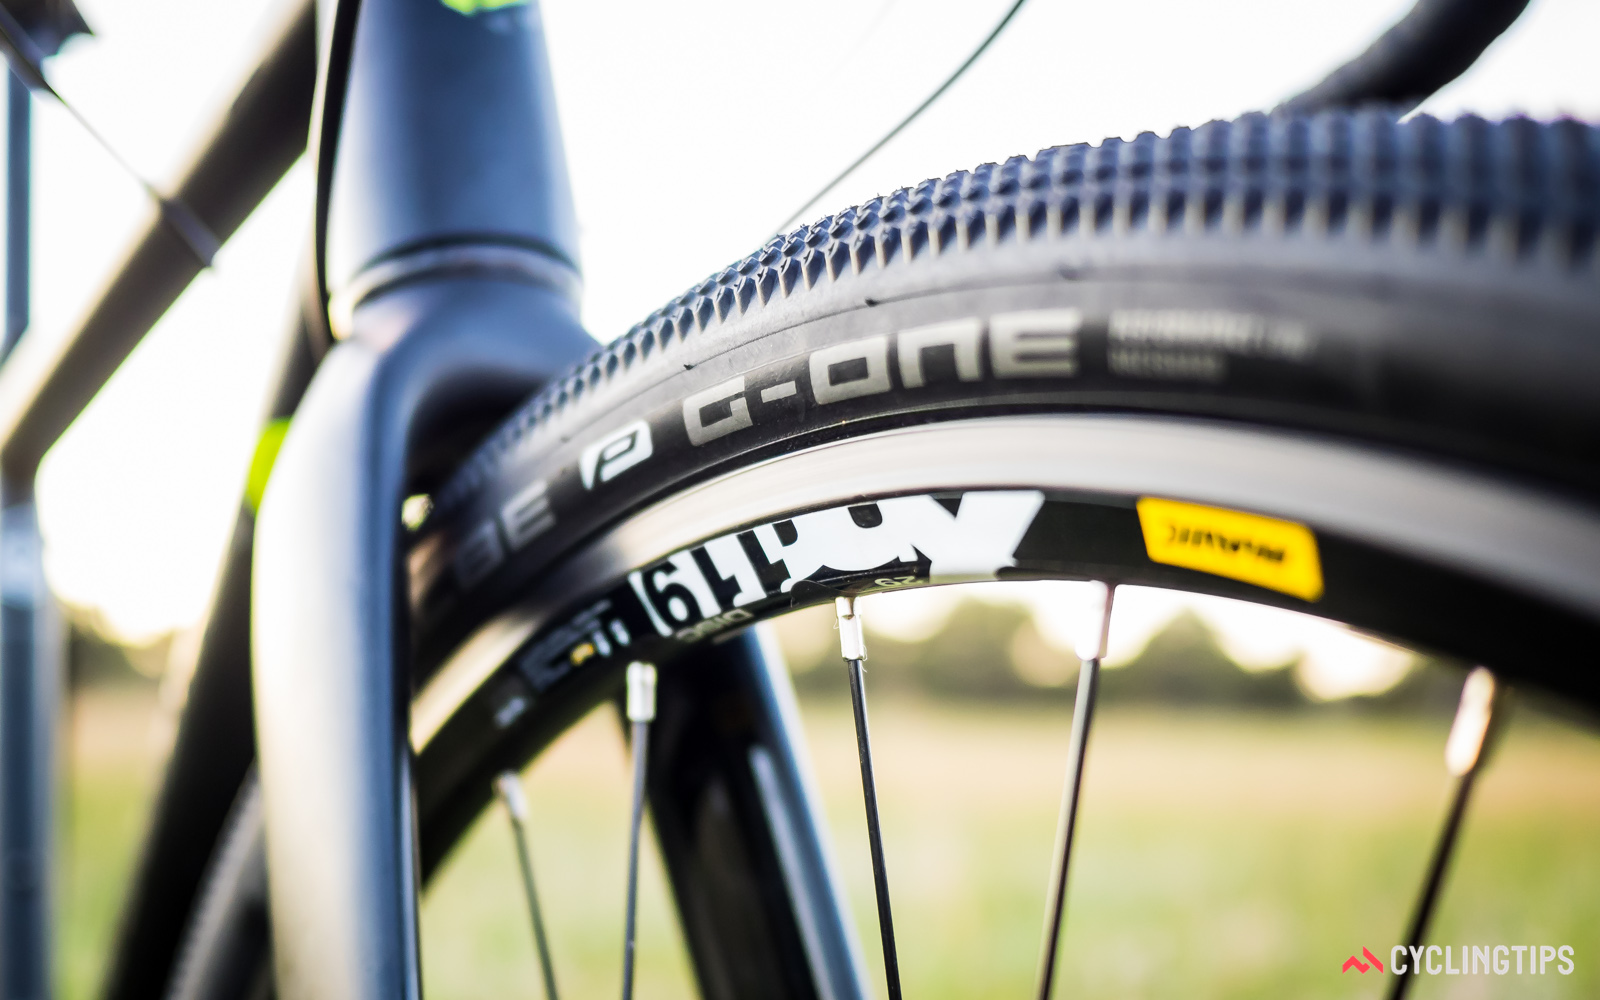 Shwalbe's G-One tyres excel in dry and dusty conditions, plus they roll easily on paved surfaces.